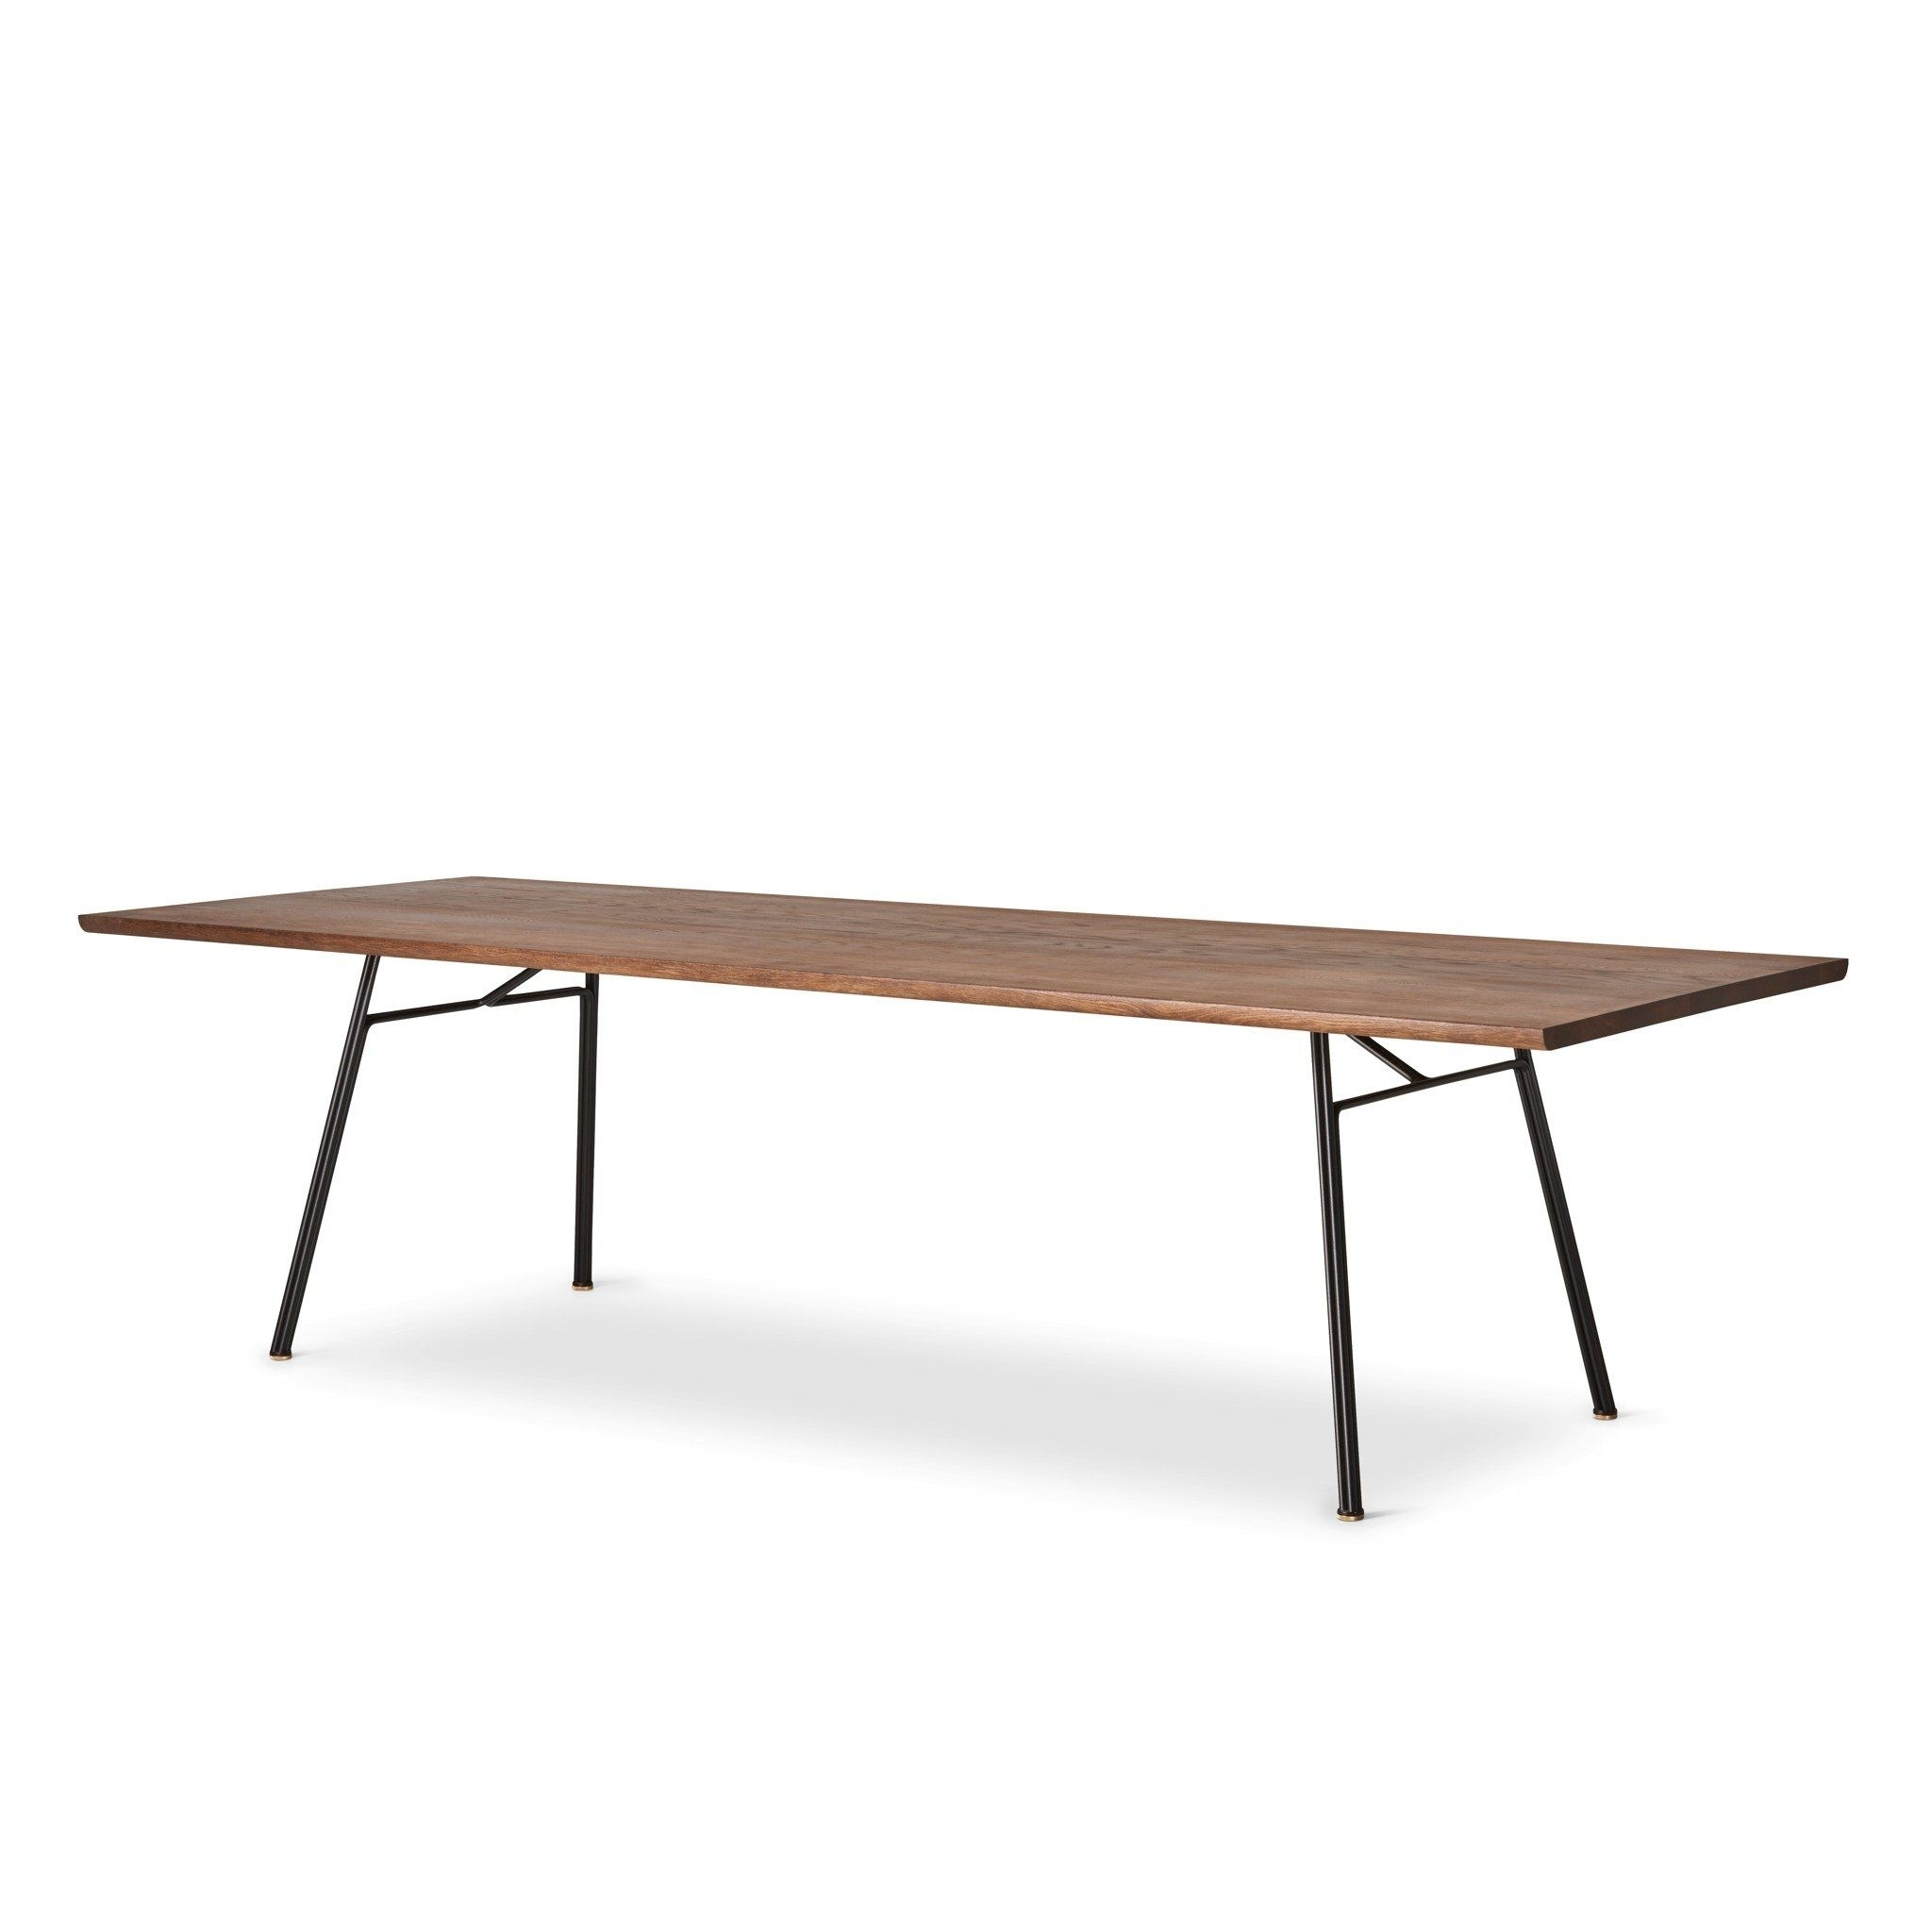 Corduroy Table Rectangular W90 Cmdk3 | Haus, Solid Wood And Woods In Latest Lassen Extension Rectangle Dining Tables (Photo 11 of 20)